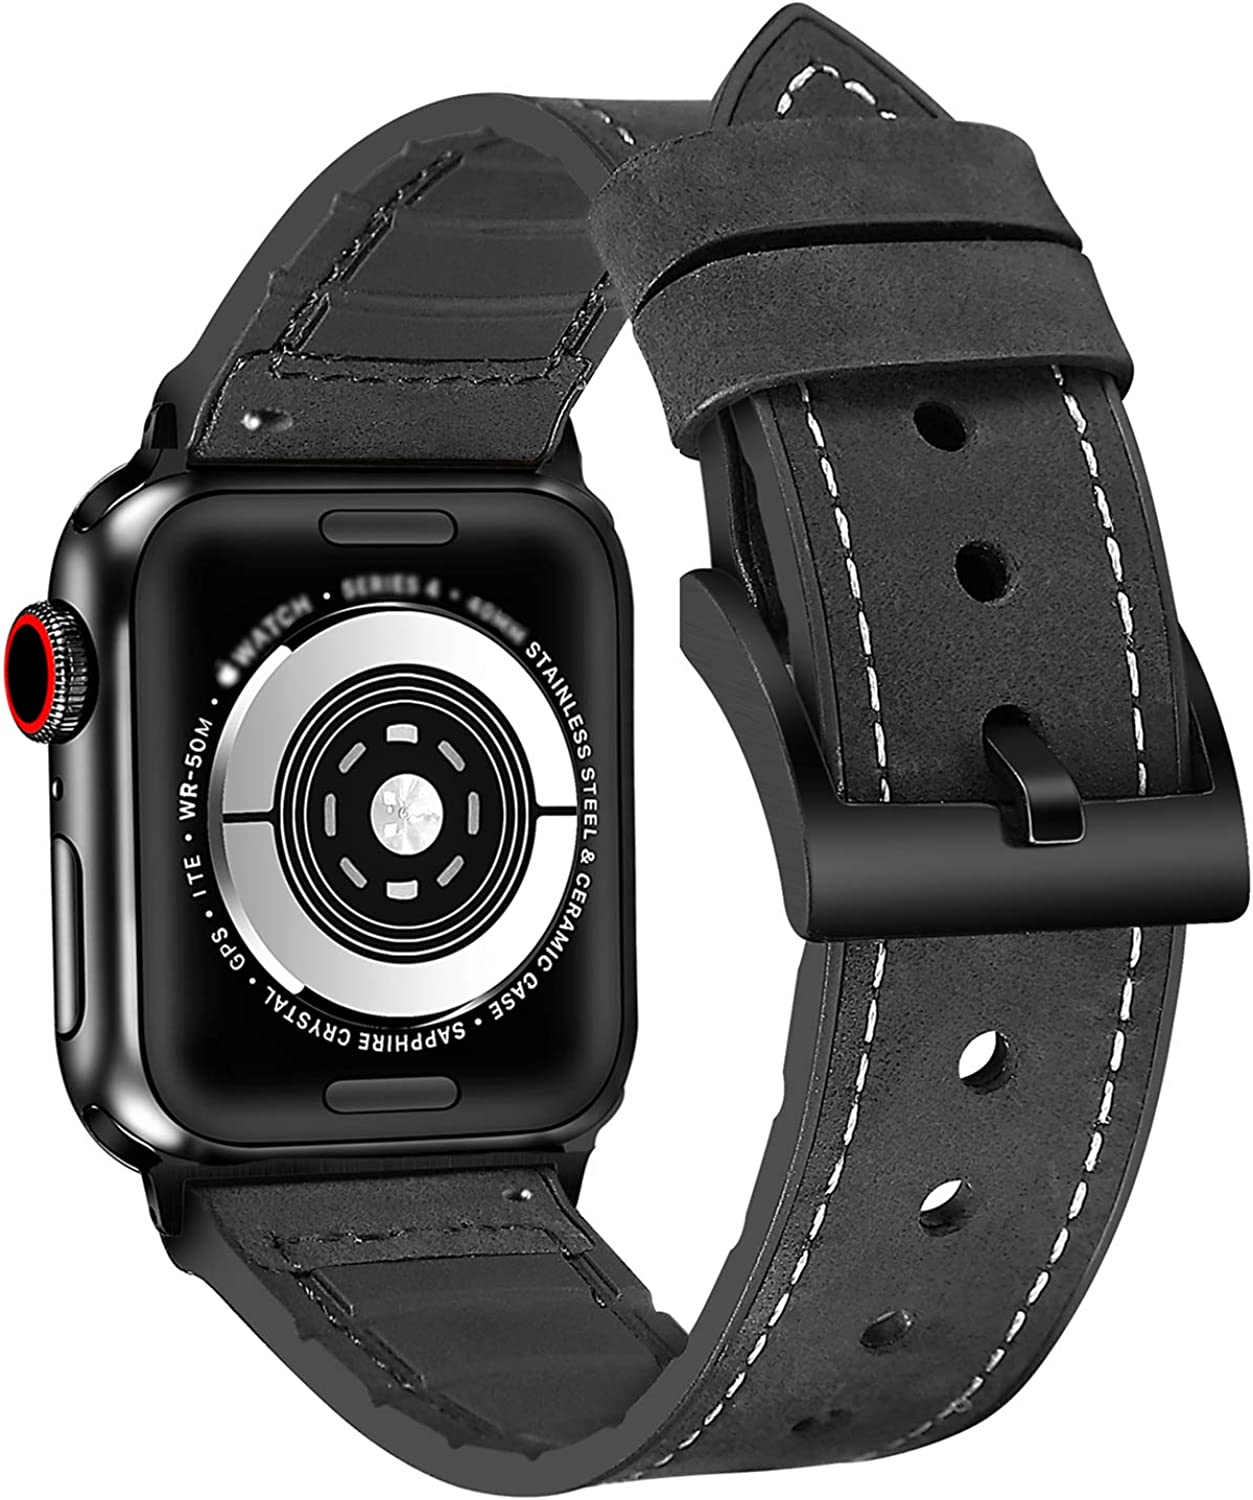 Huanchenda 2 in1 Leather Watch Band for Men and Women Compatible with Apple Watch Band Series 5/4/3/2/1, Replaceable Apple Strap 38mm40mm42mm44mm and Other 22mm Smartwatch Band